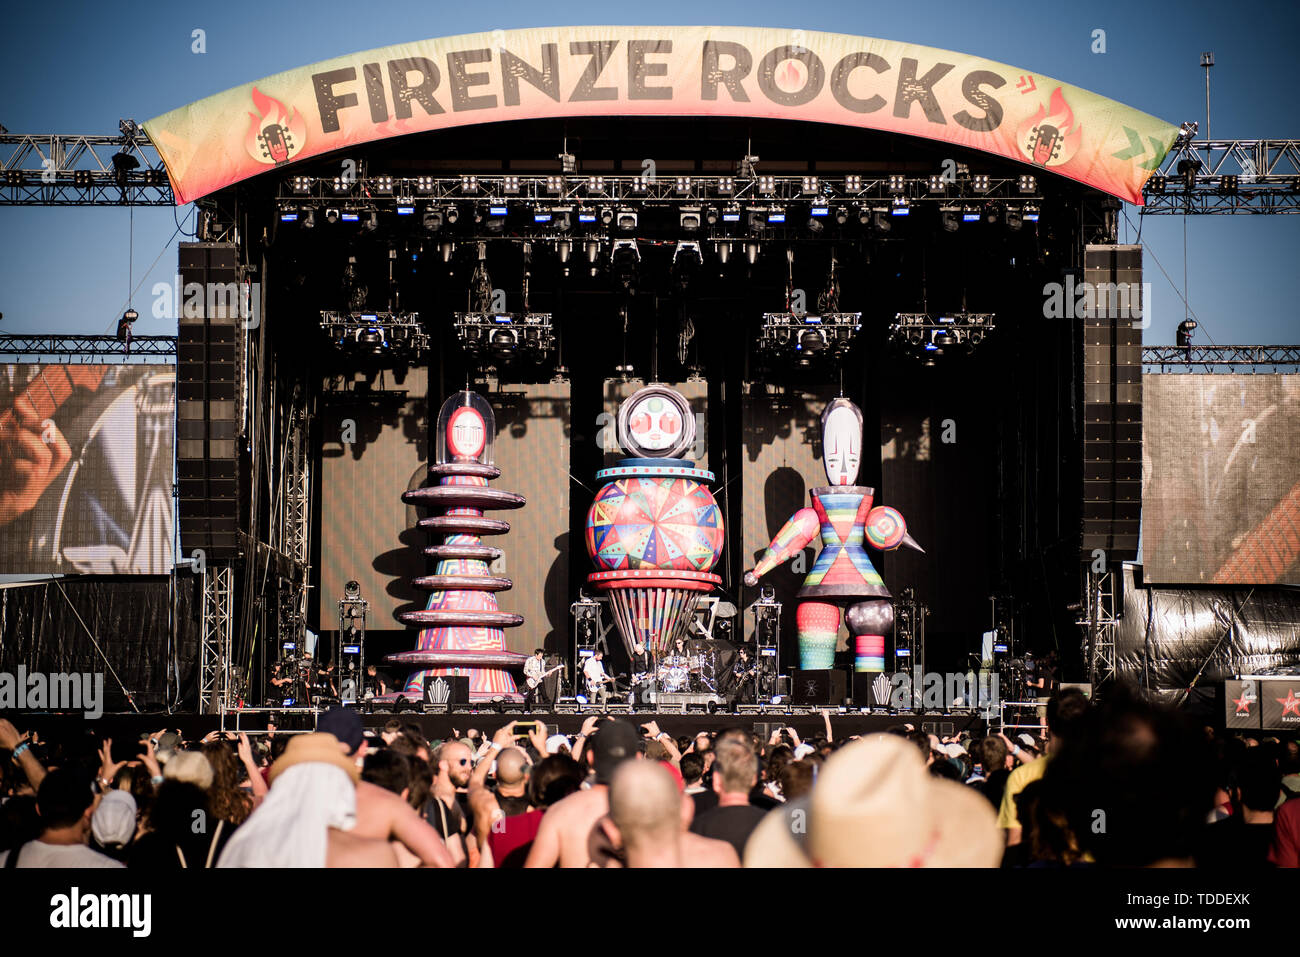 Firenze, Italy. 13th June, 2019. The American rock band Smashing Pumpkins, performing live on stage at the Firenze Rocks festival 2019 in Florence, Italy, opening for Tool Credit: Alessandro Bosio/Pacific Press/Alamy Live News - Stock Image